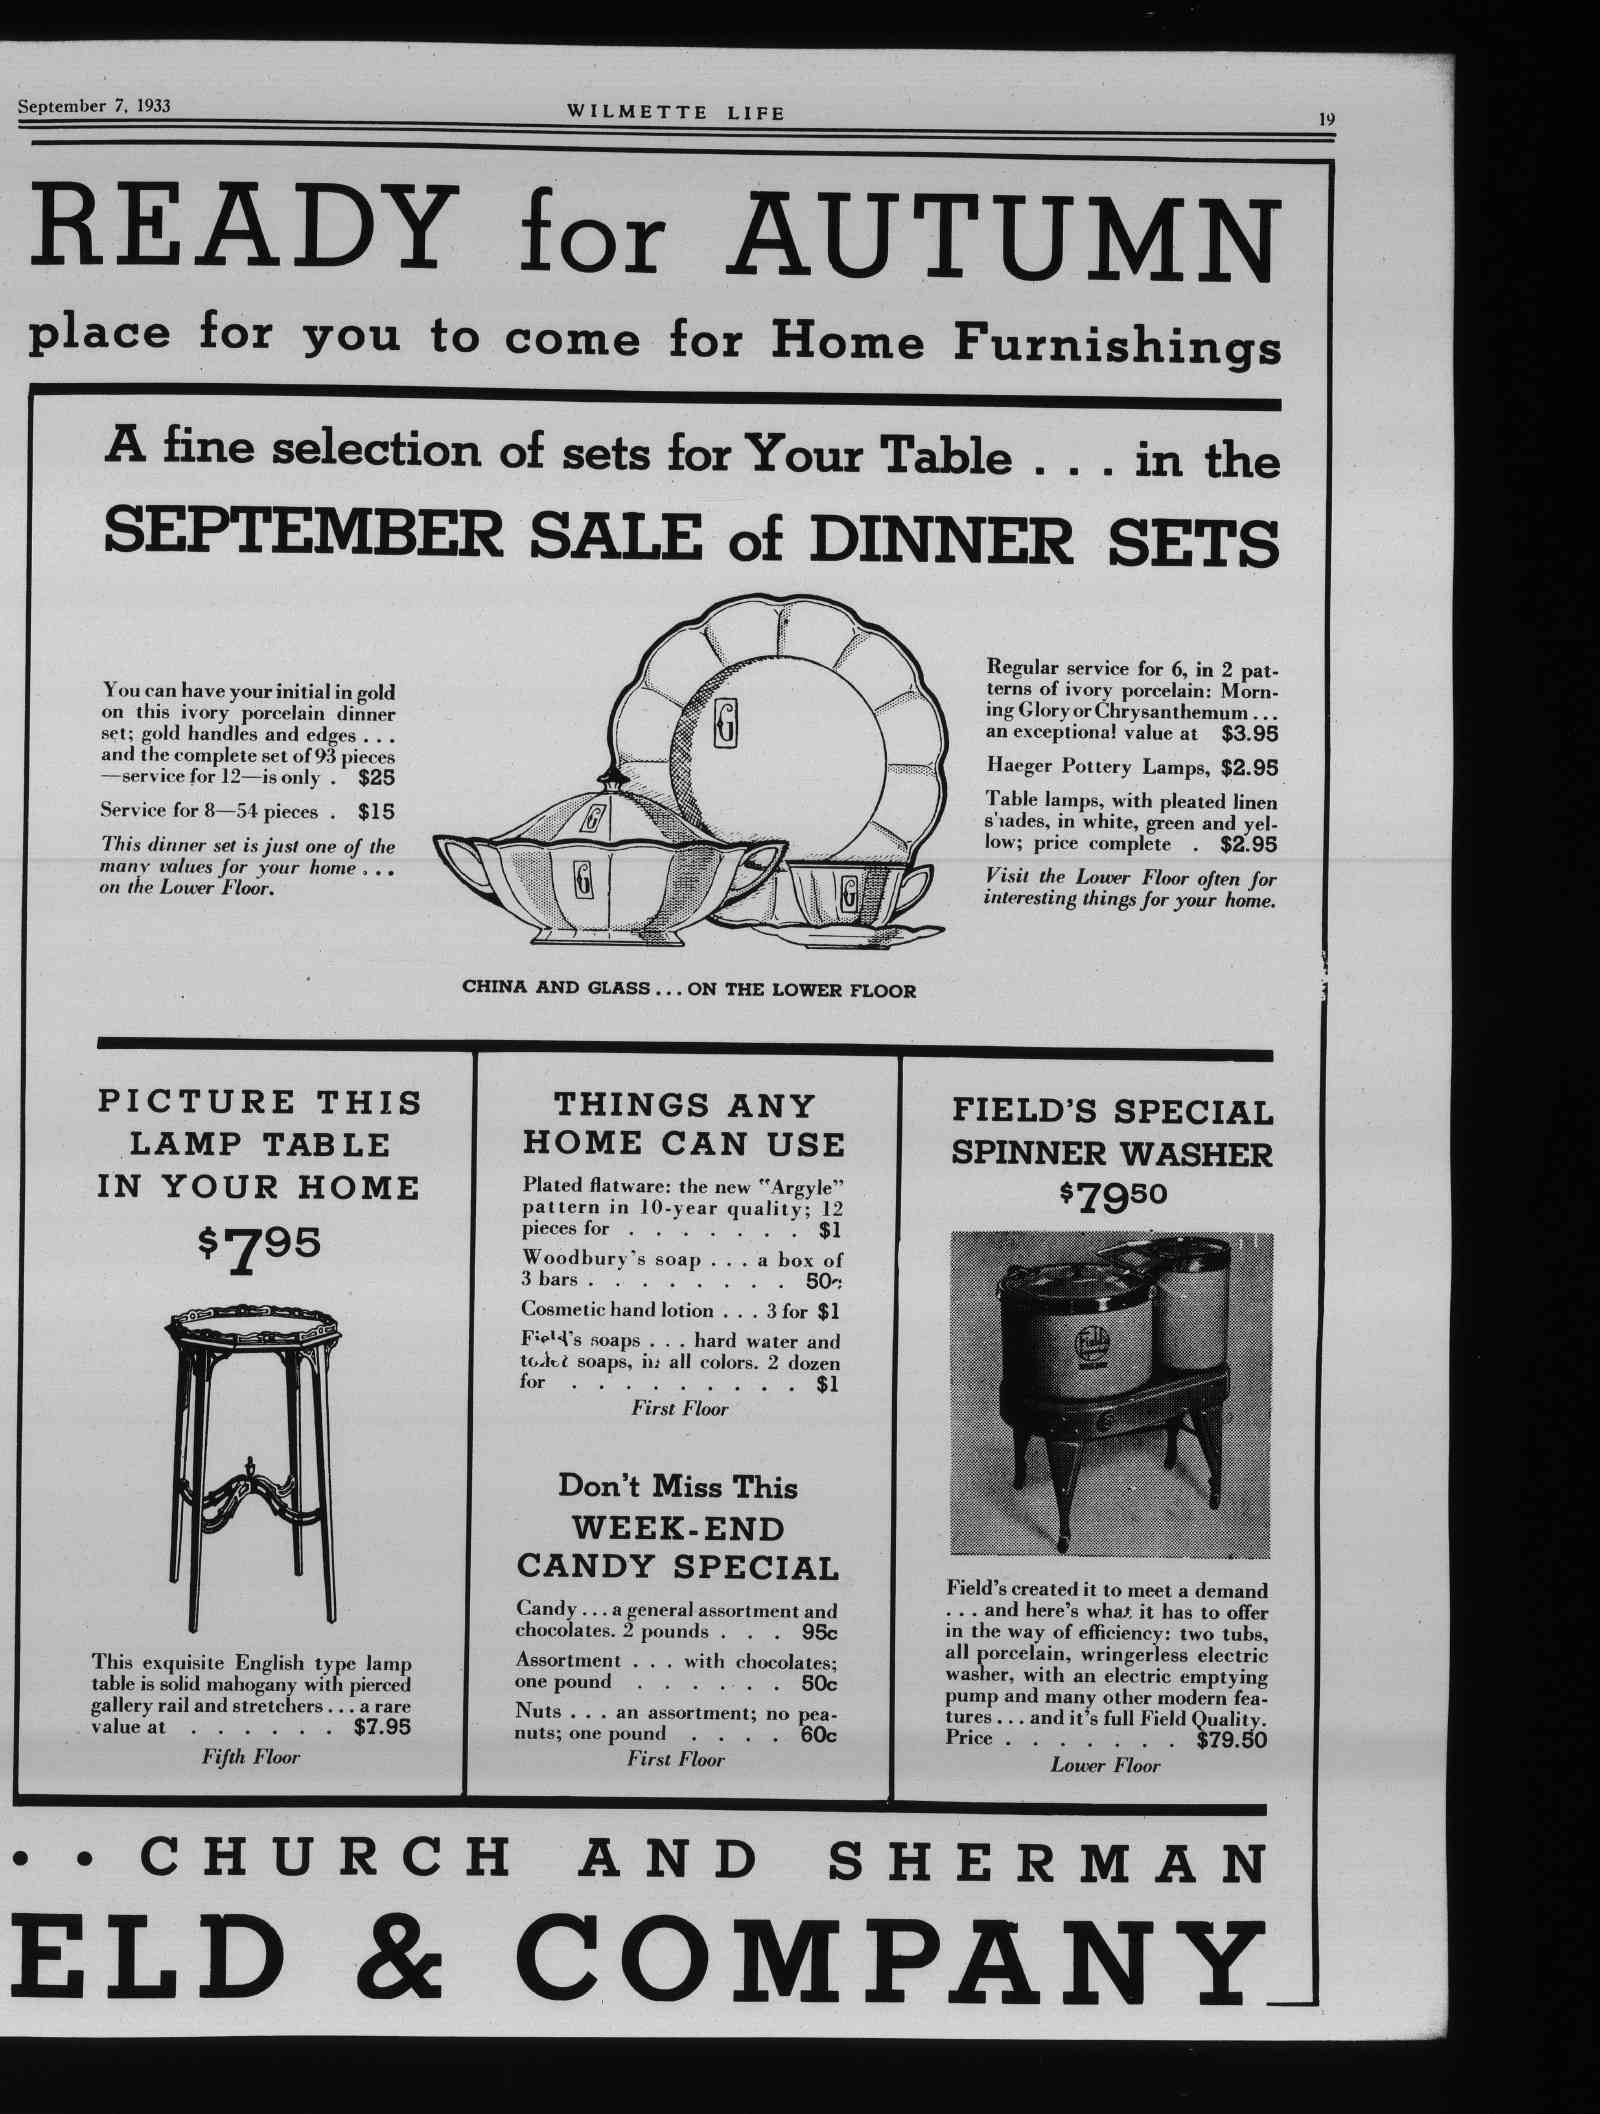 Wilmette Life (Wilmette, Illinois), 7 Sep 1933